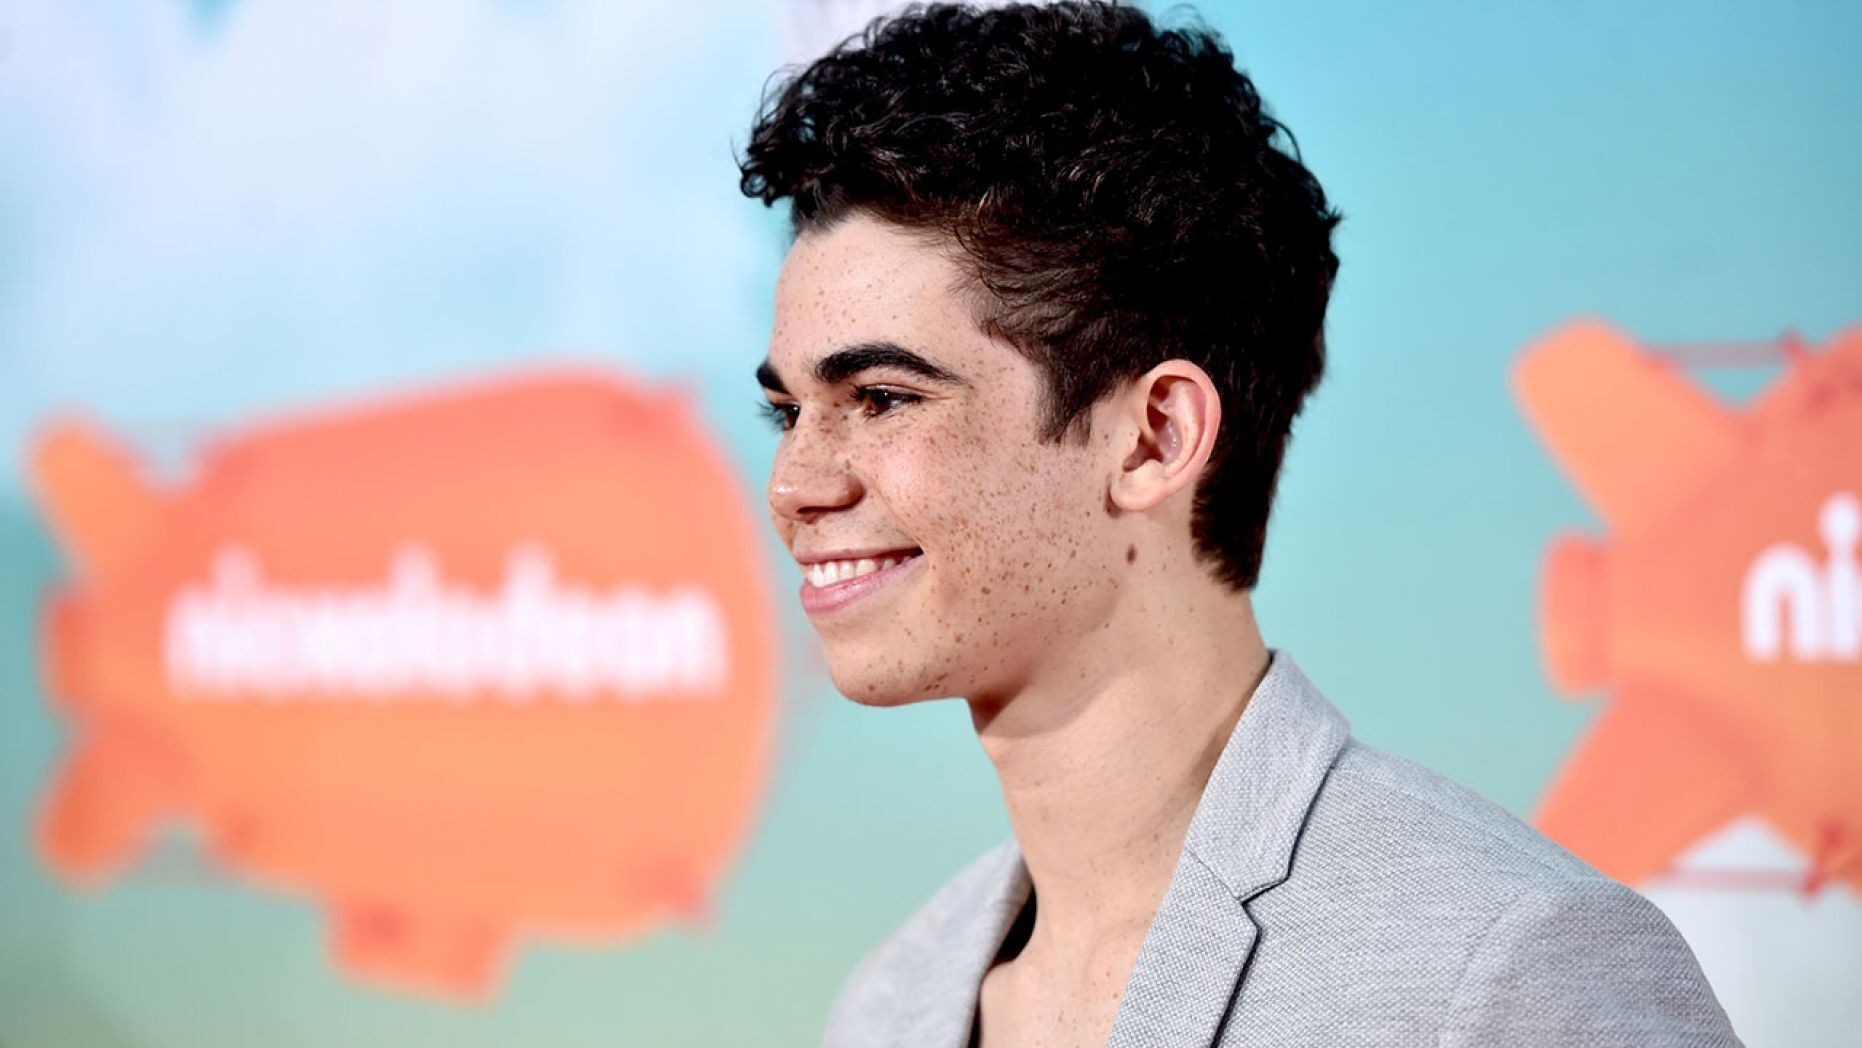 Disney Channel star Cameron Boyce dies at 20; suffered seizure, family says